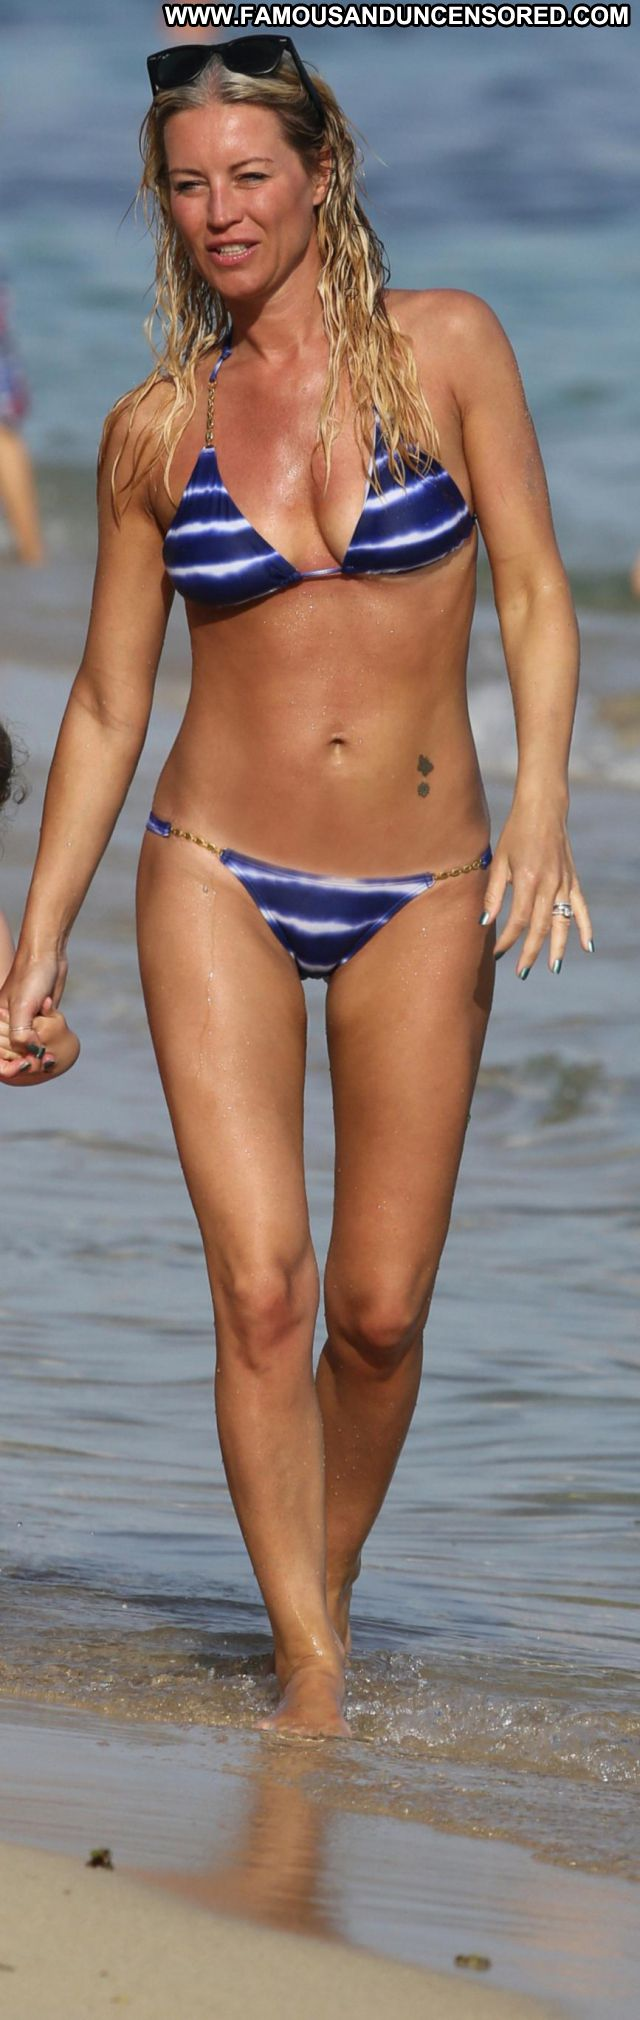 Nude Celebrity Denise Van Outen Pictures And Videos -6503